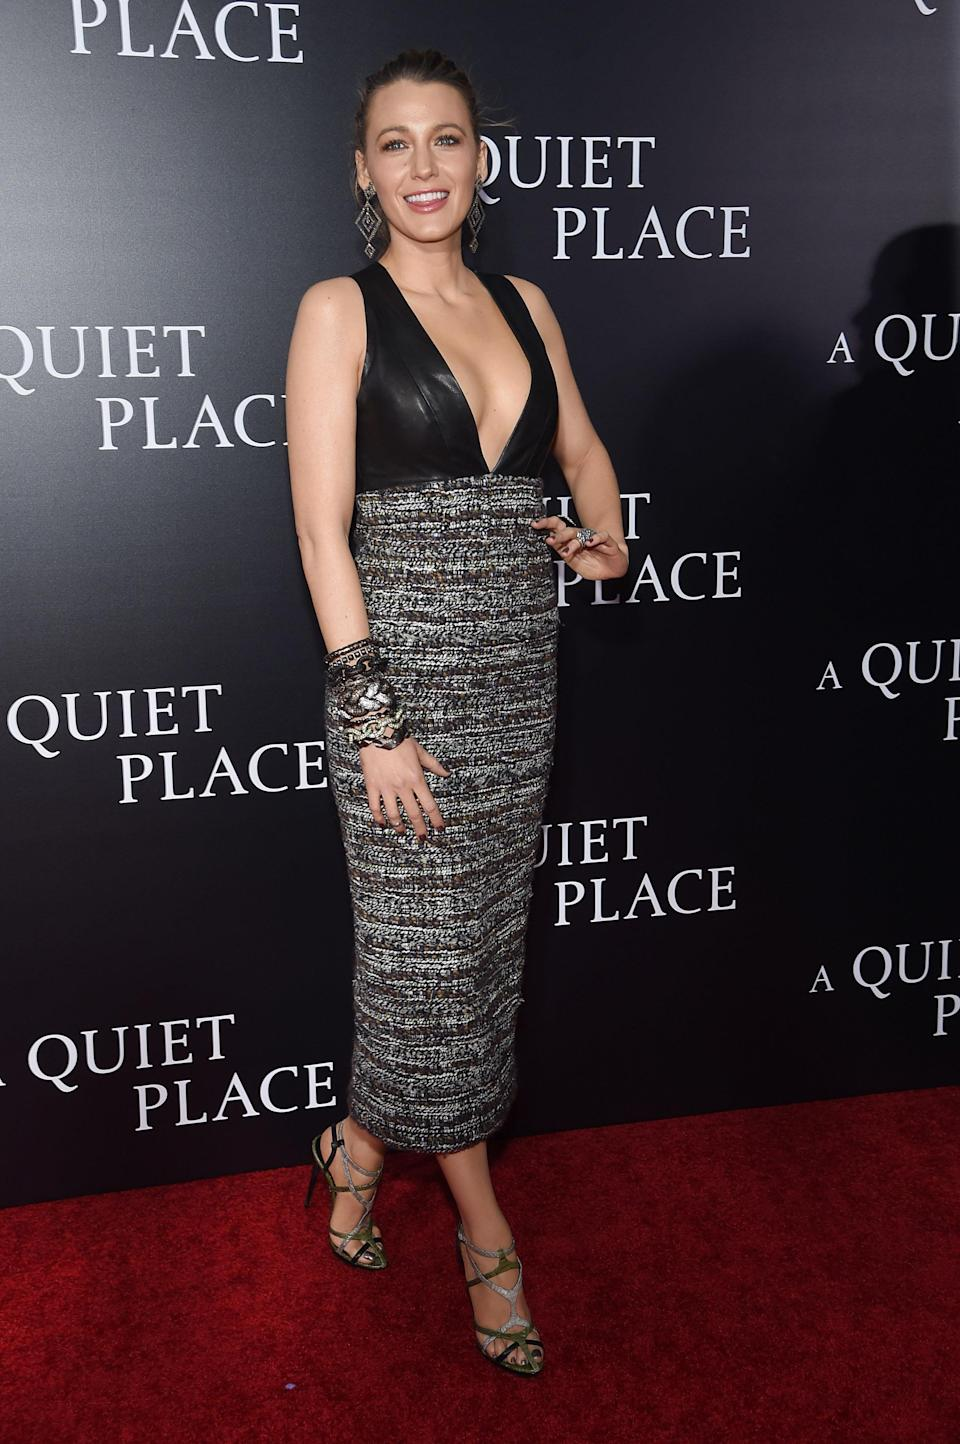 <p>At the premiere of 'A Quiet Place', Blake mixed textures in a tweed Chanel dress, which came with a leather top, and Balenciaga heels. <br><em>[Photo: Getty]</em> </p>